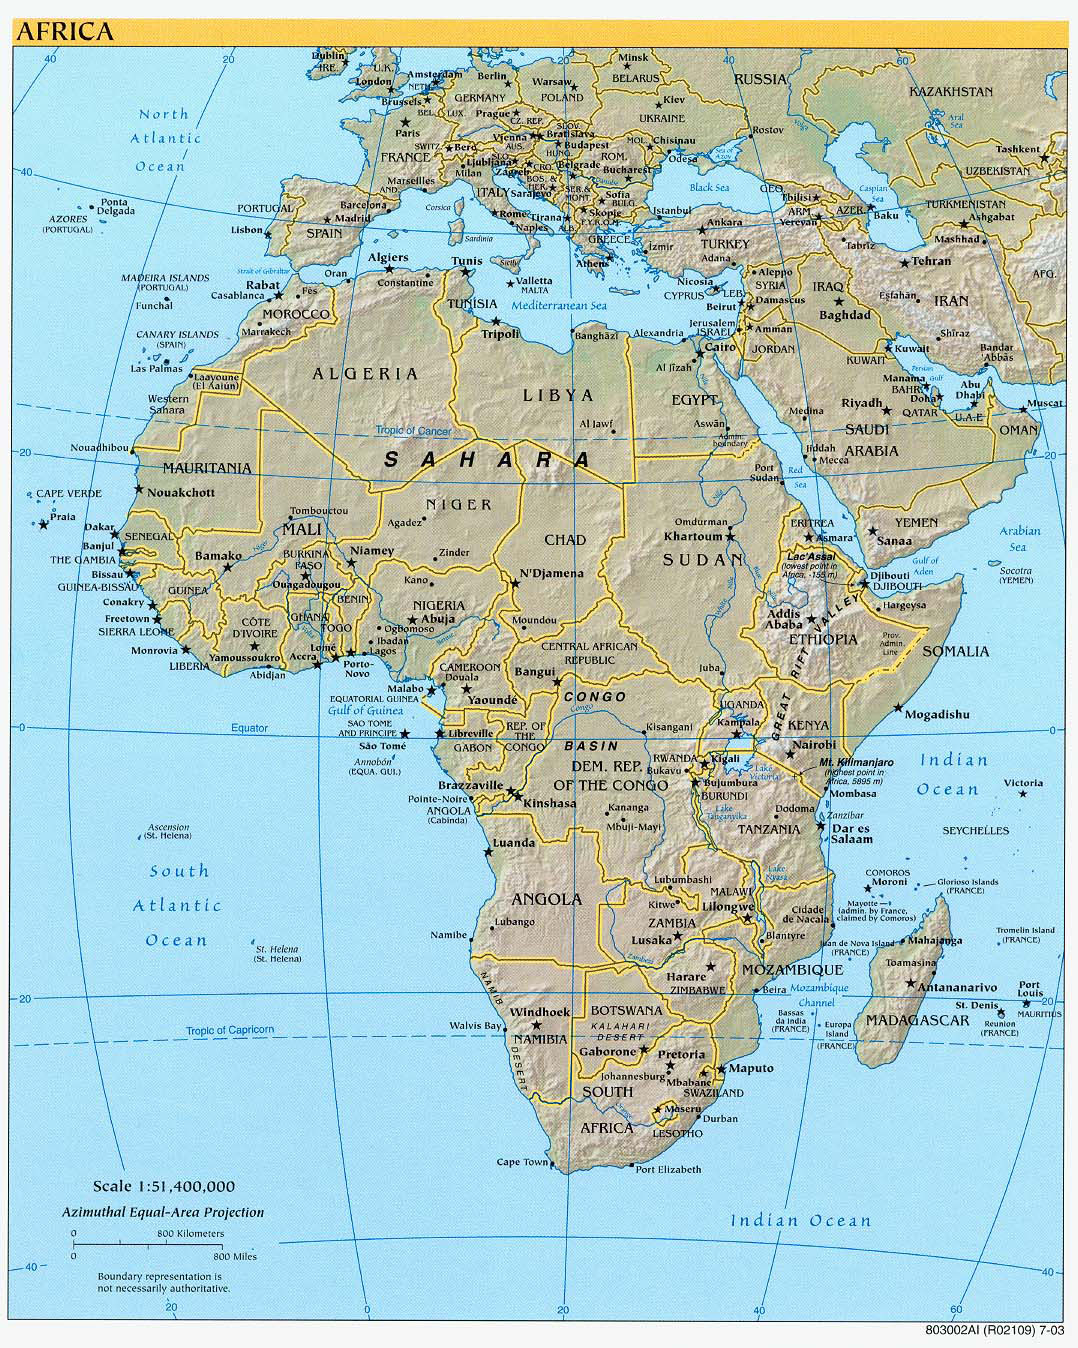 Picture of: Large Detailed Political And Relief Map Of Africa Africa Large Detailed Political And Relief Map Vidiani Com Maps Of All Countries In One Place